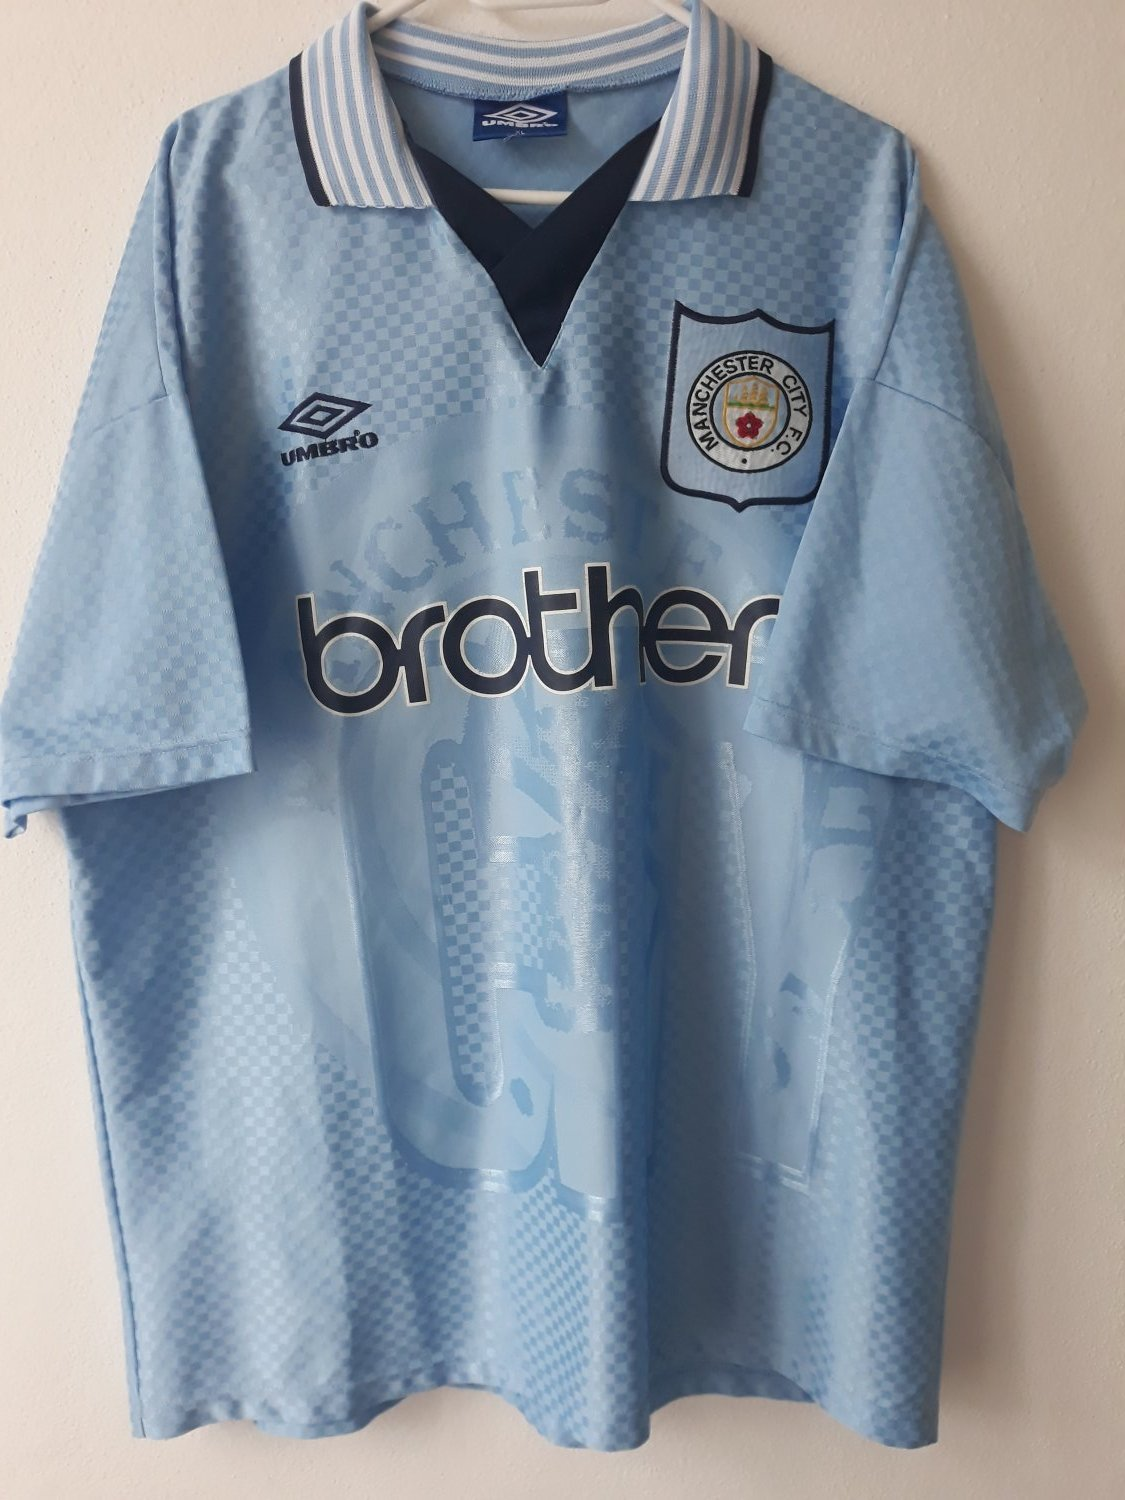 7ea2da31d64 Manchester City Home Maillot de foot 1995 - 1997. Sponsored by Brother